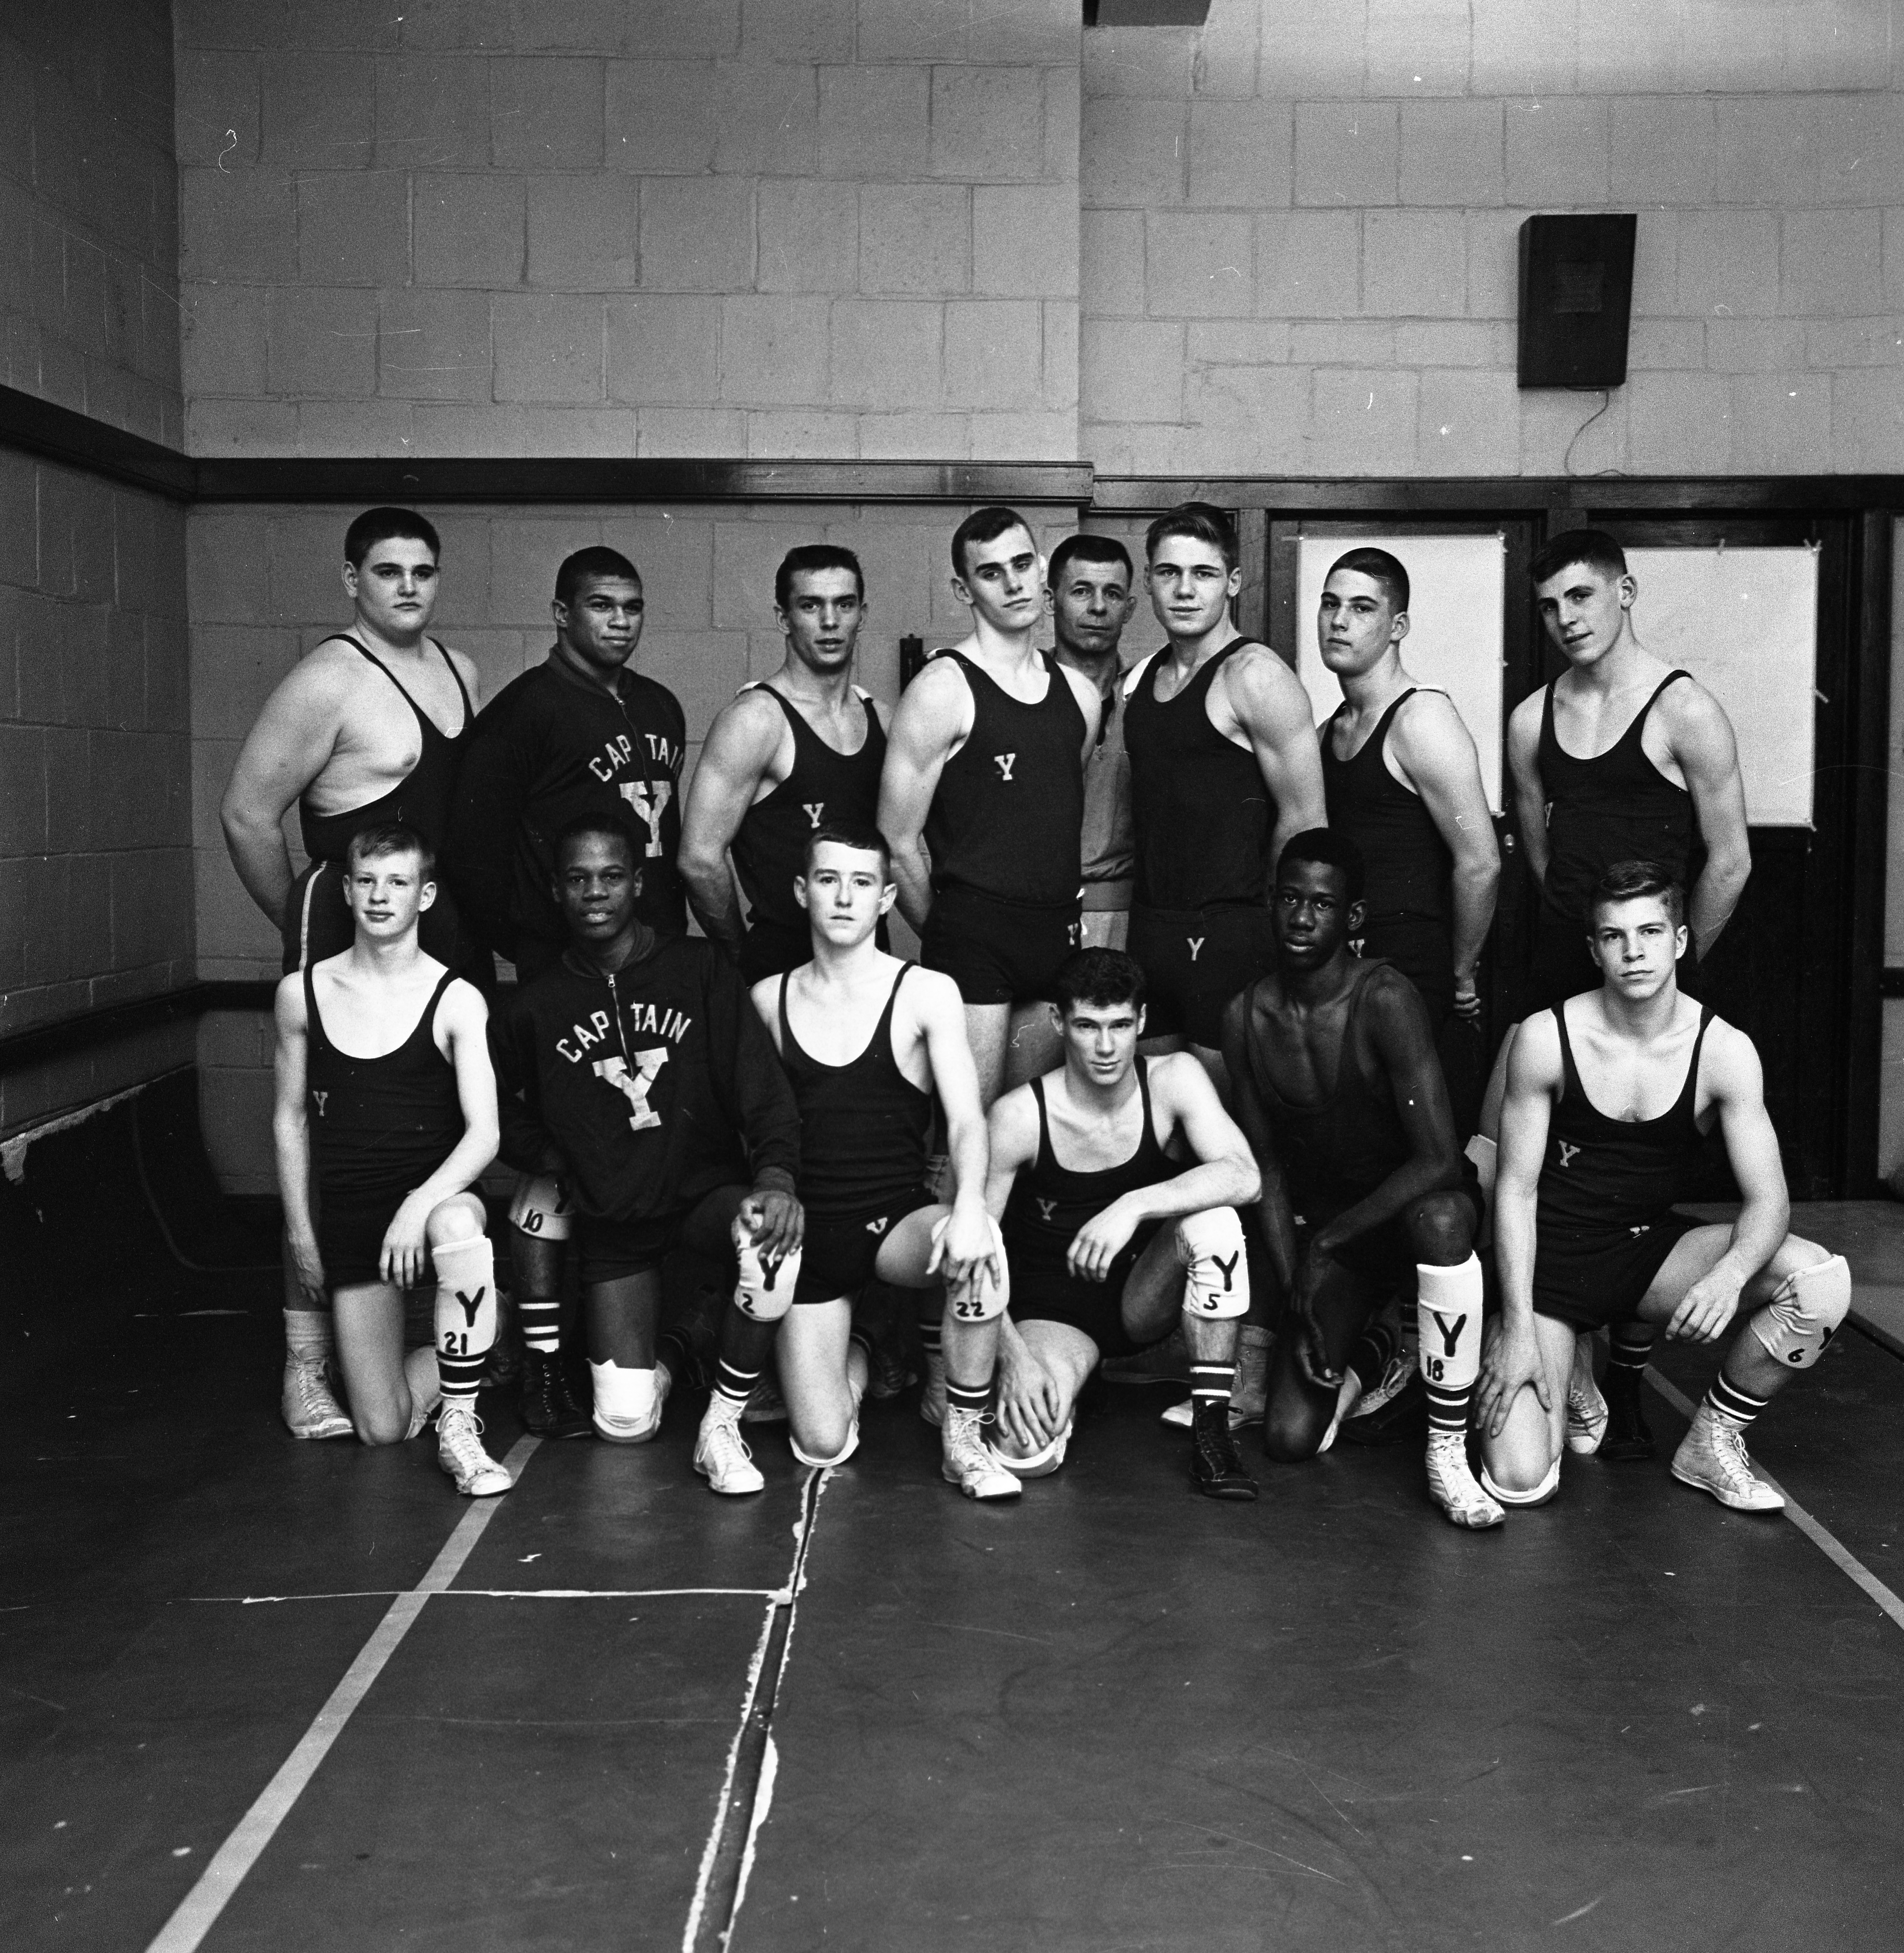 Ypsilanti High School Wrestling Team Champions of Huron-Rouge Valley League, March 1964 image